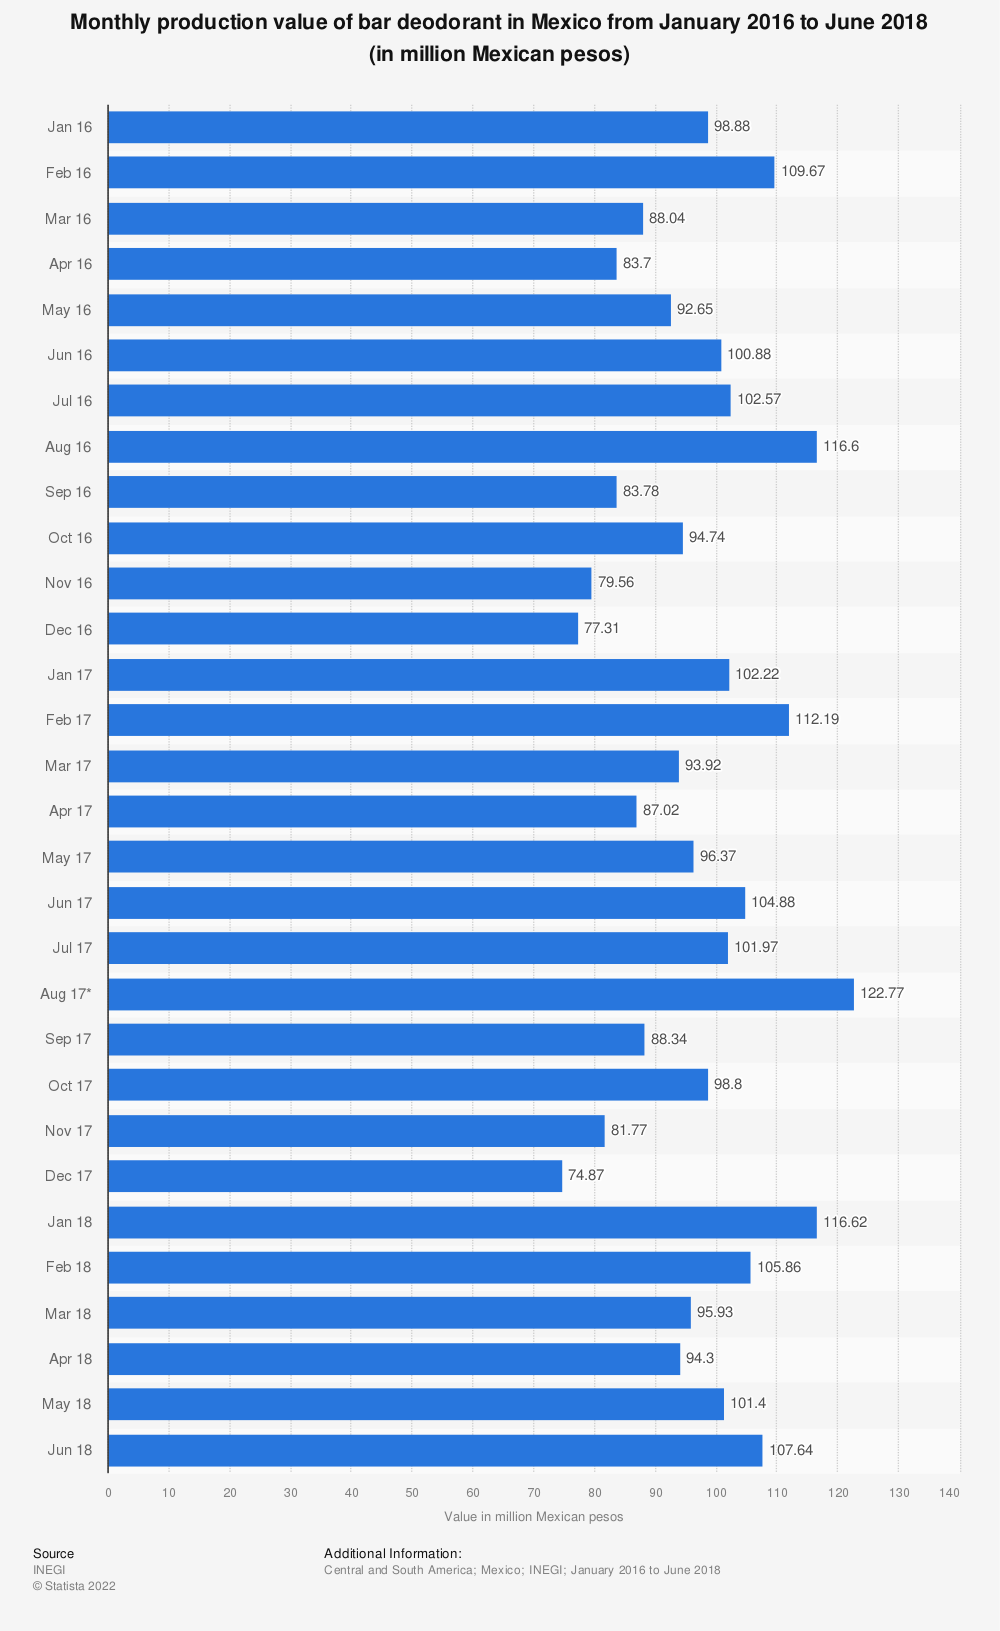 Statistic: Monthly production value of bar deodorant in Mexico from January 2016 to June 2018 (in million Mexican pesos) | Statista